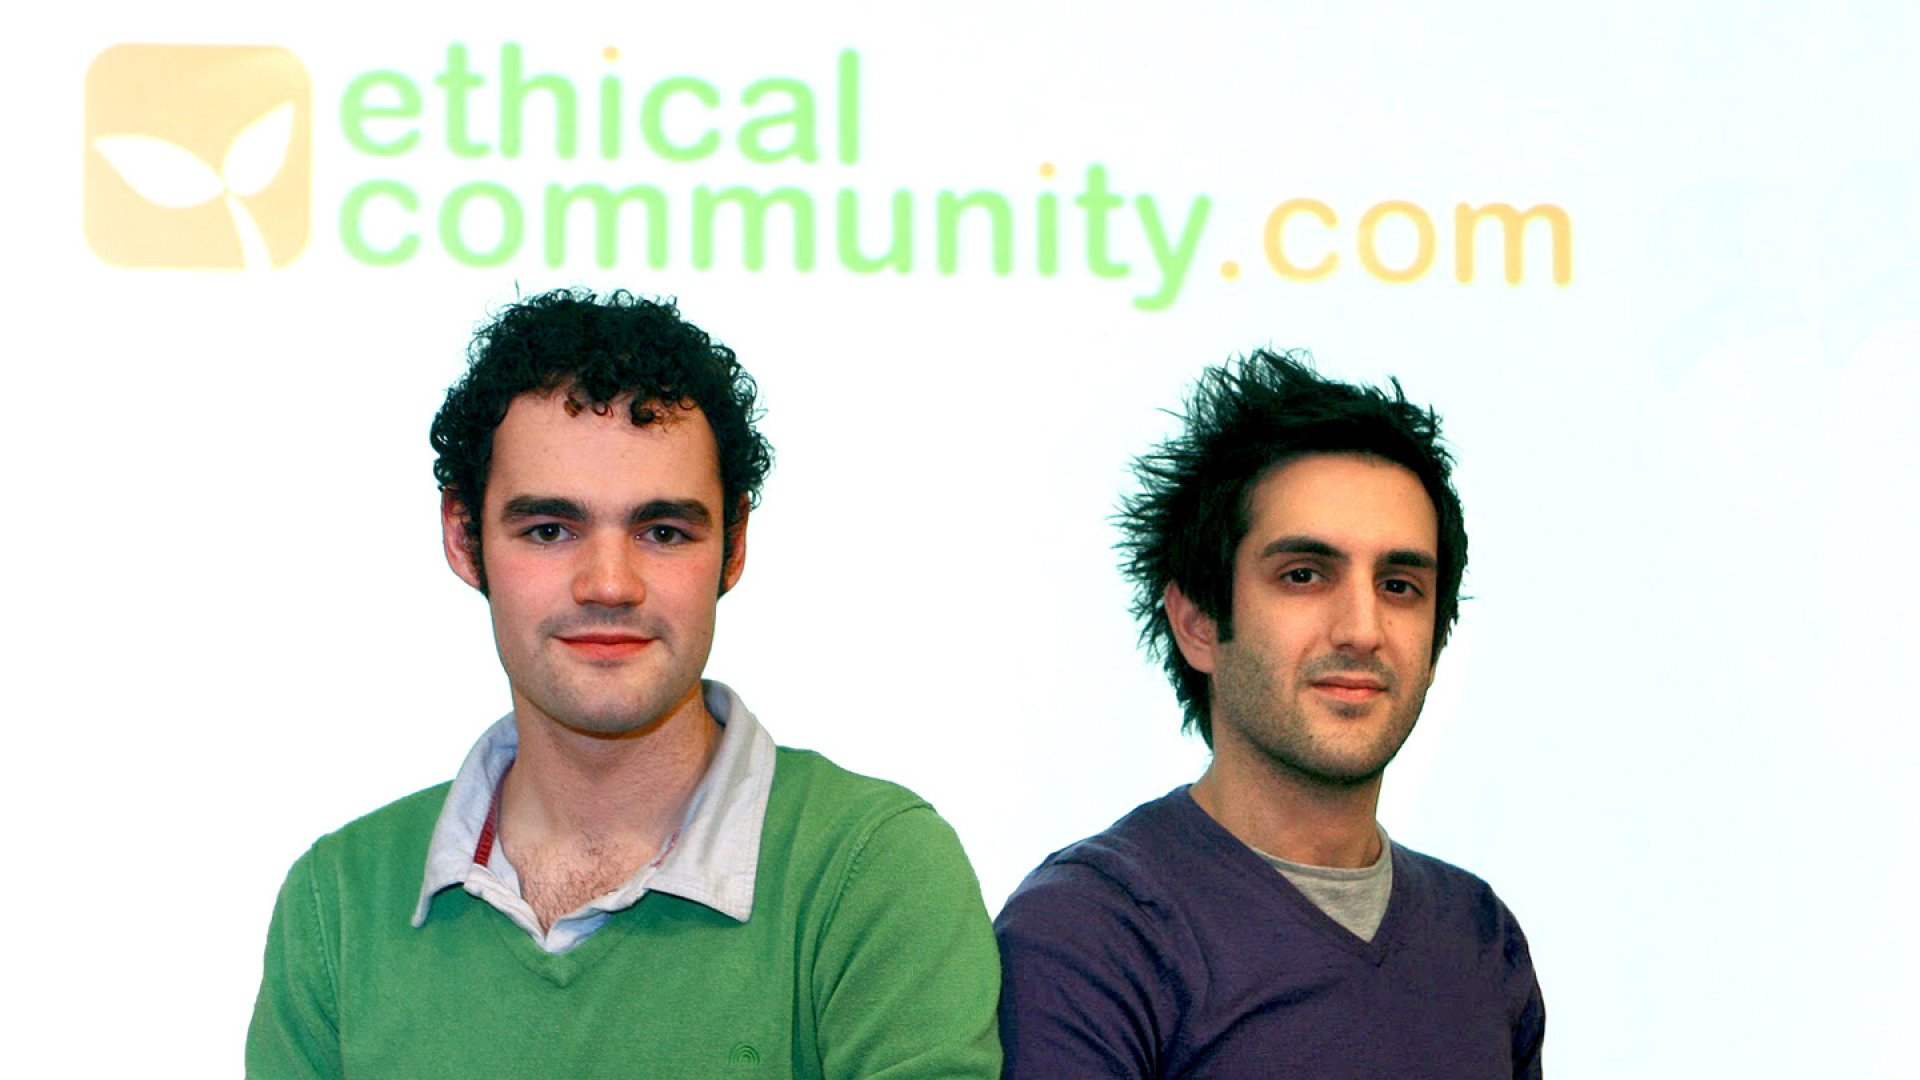 Co-founders Liam Patterson (left) and Jason Dainter (right).